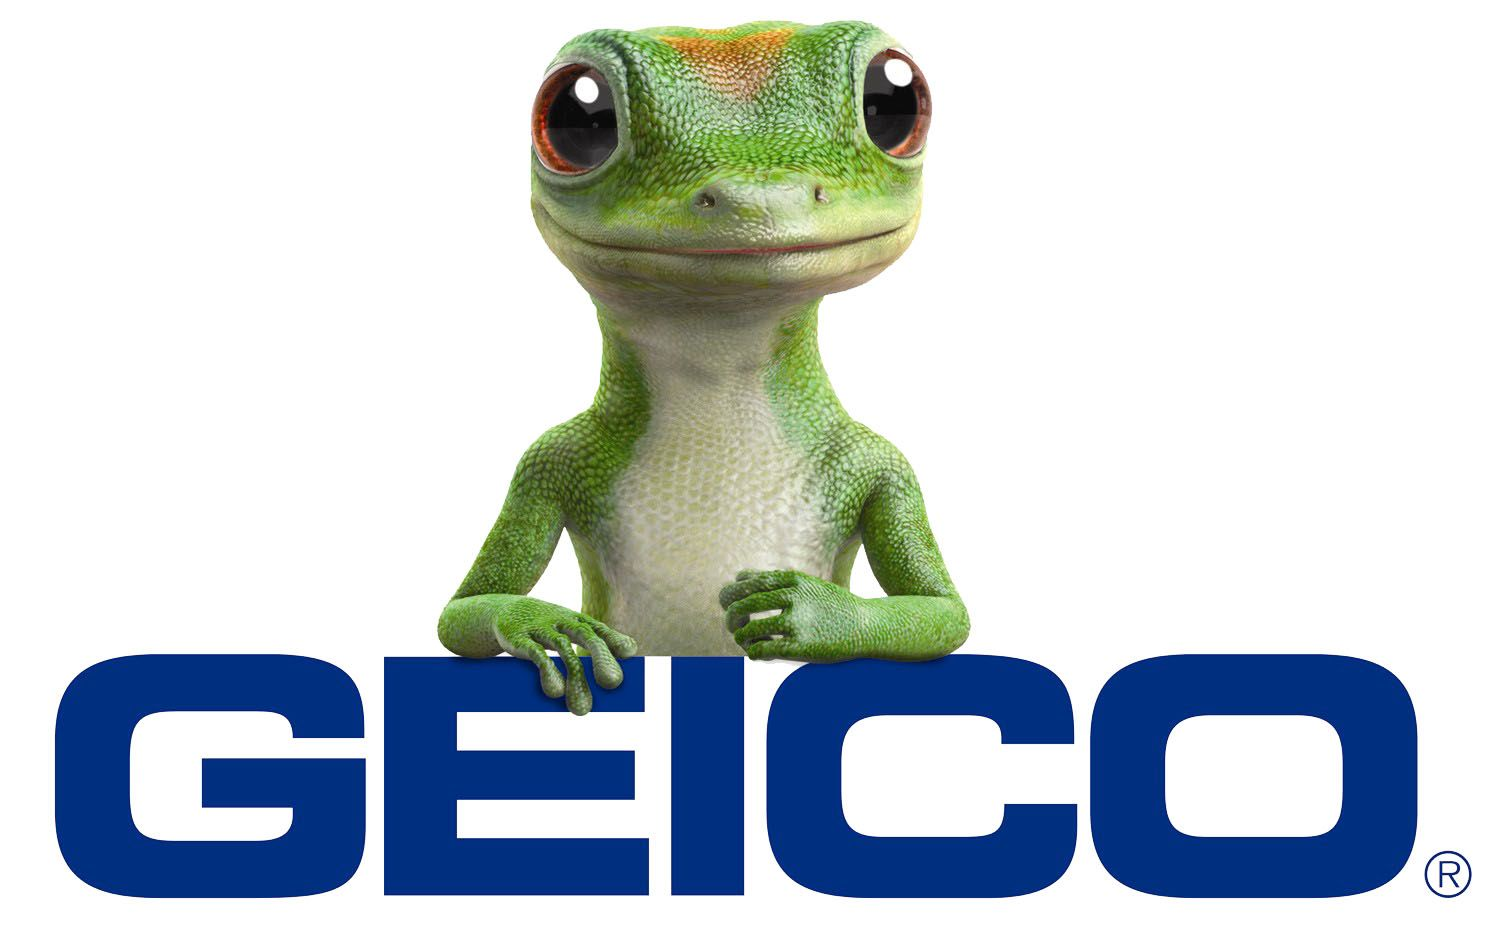 Pin By B W B H Essentials On I N S U R A N C E Geico Car